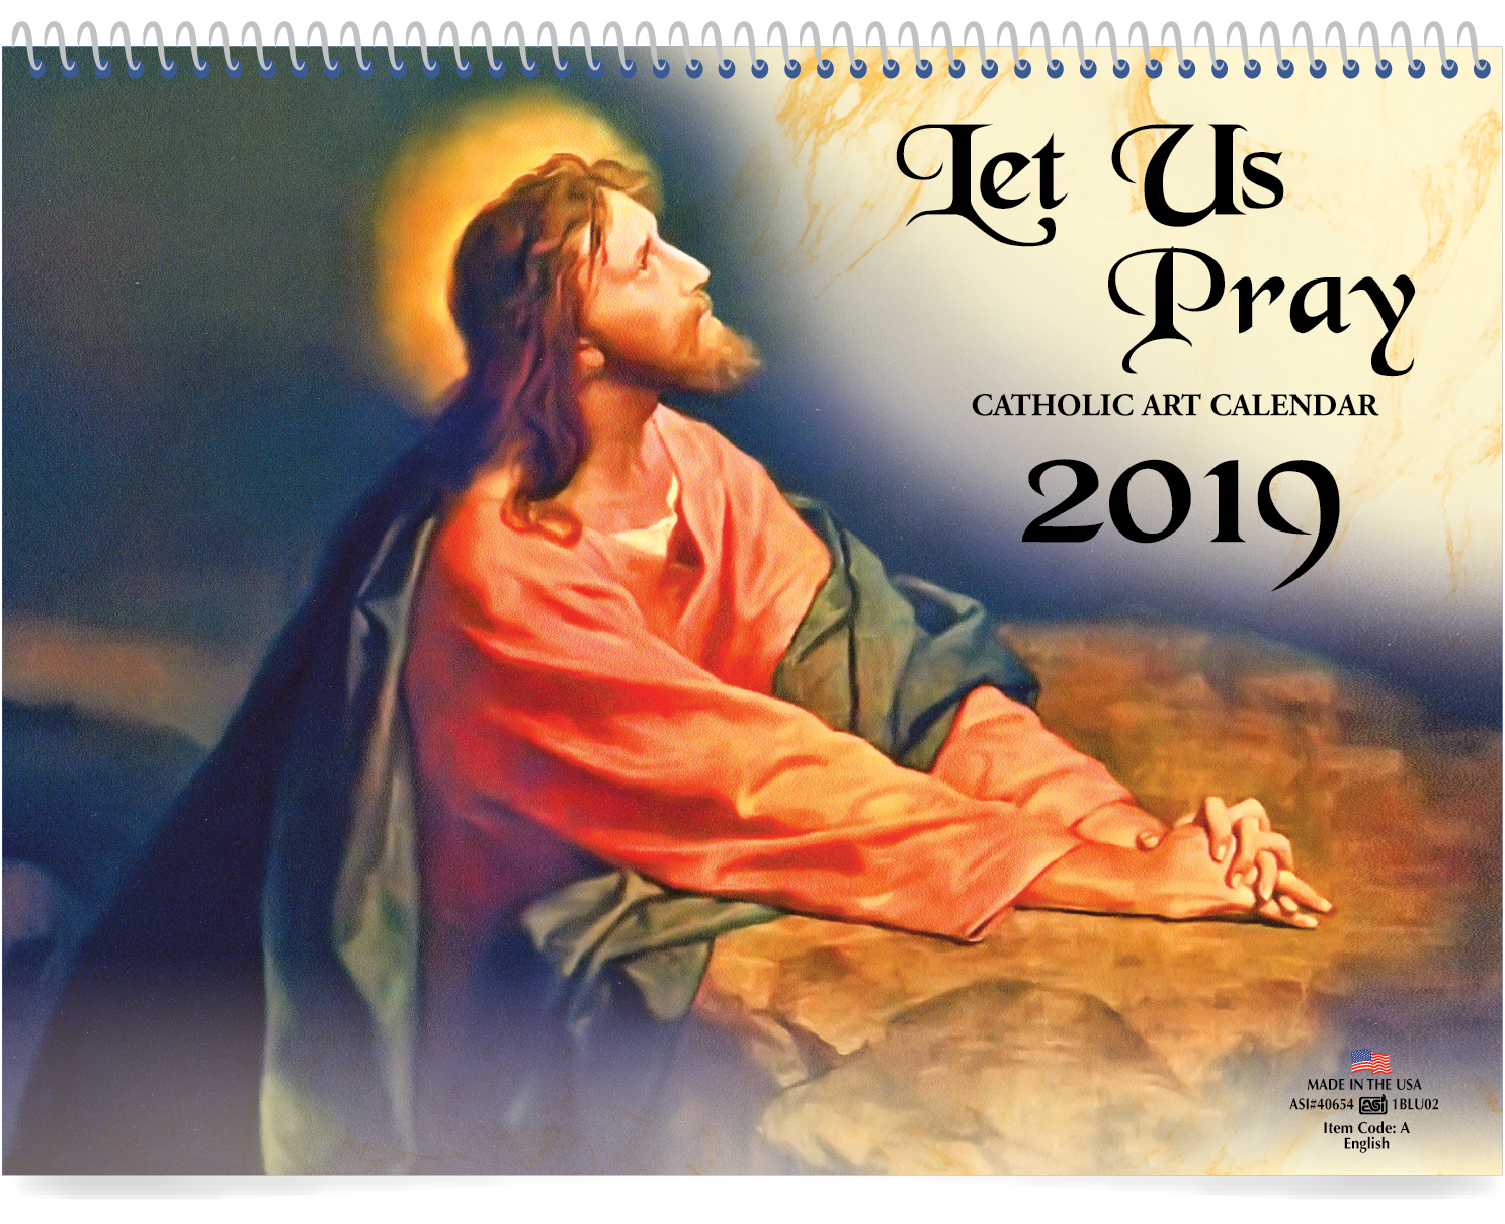 beautifully illustrated reproductions of the great works of extraordinary artists such as murillo hofmann and barocci this keepsake catholic calendar